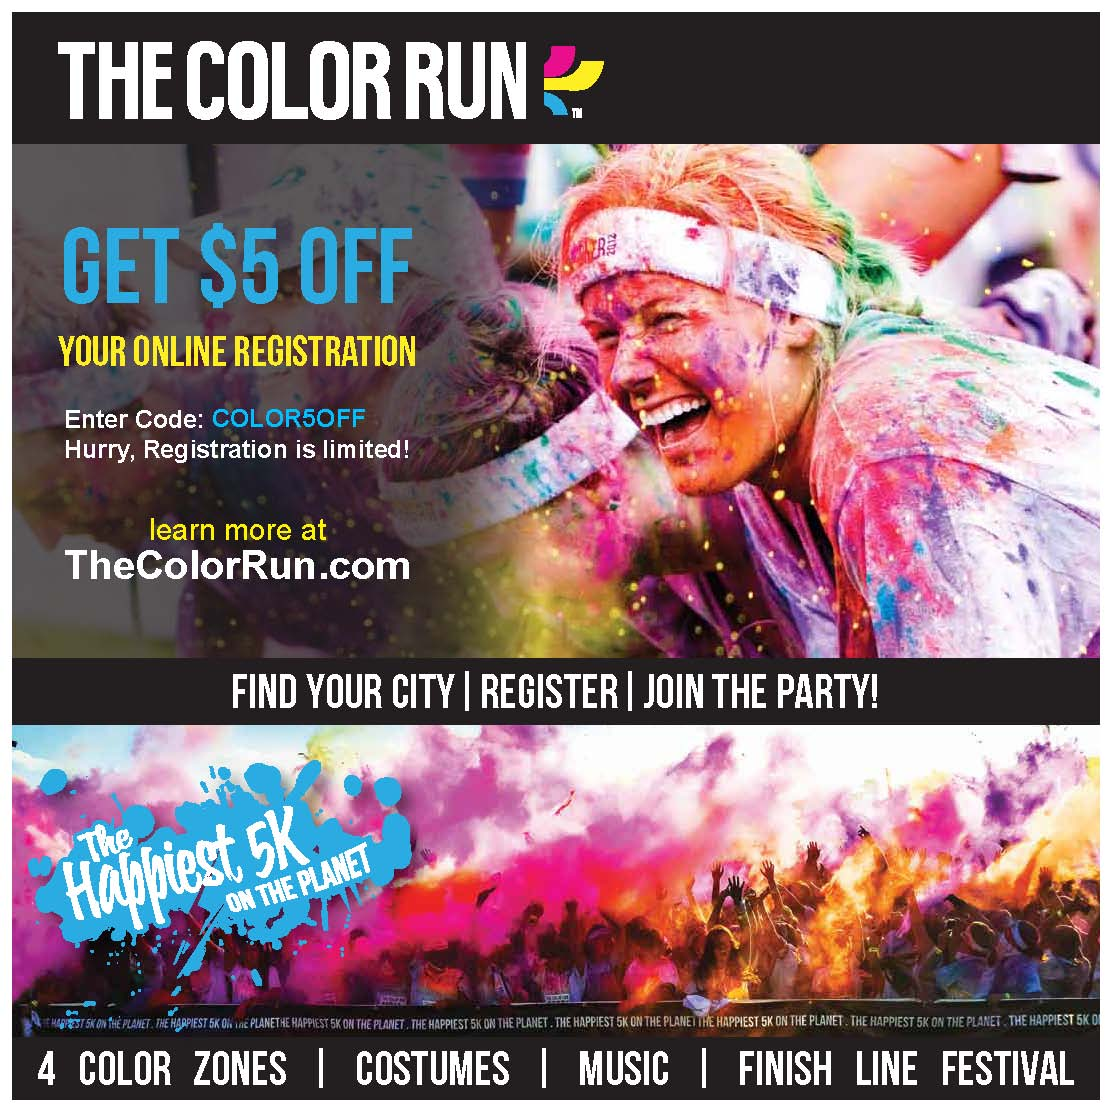 Ft Lauderdale Color Run 5k Offers For Nsu Community Please Use The P Code Colornova13 At Checkout